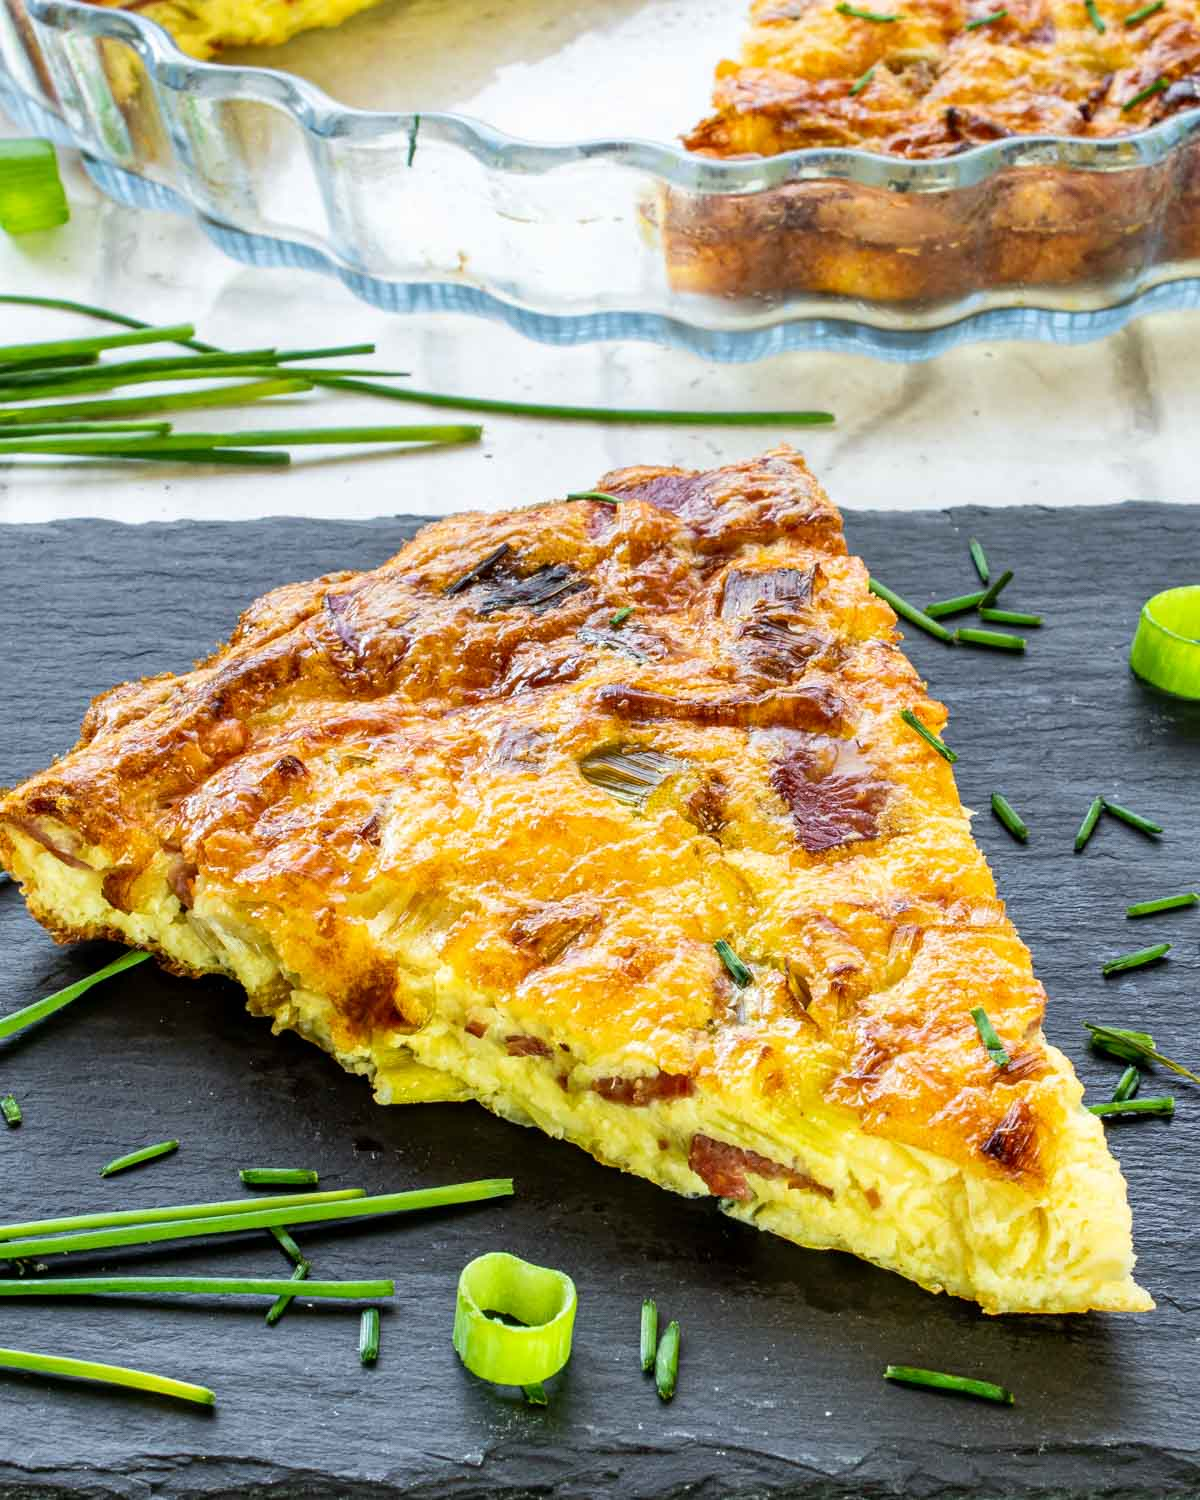 a slice of crustless quiche on a black plate garnished with chives.